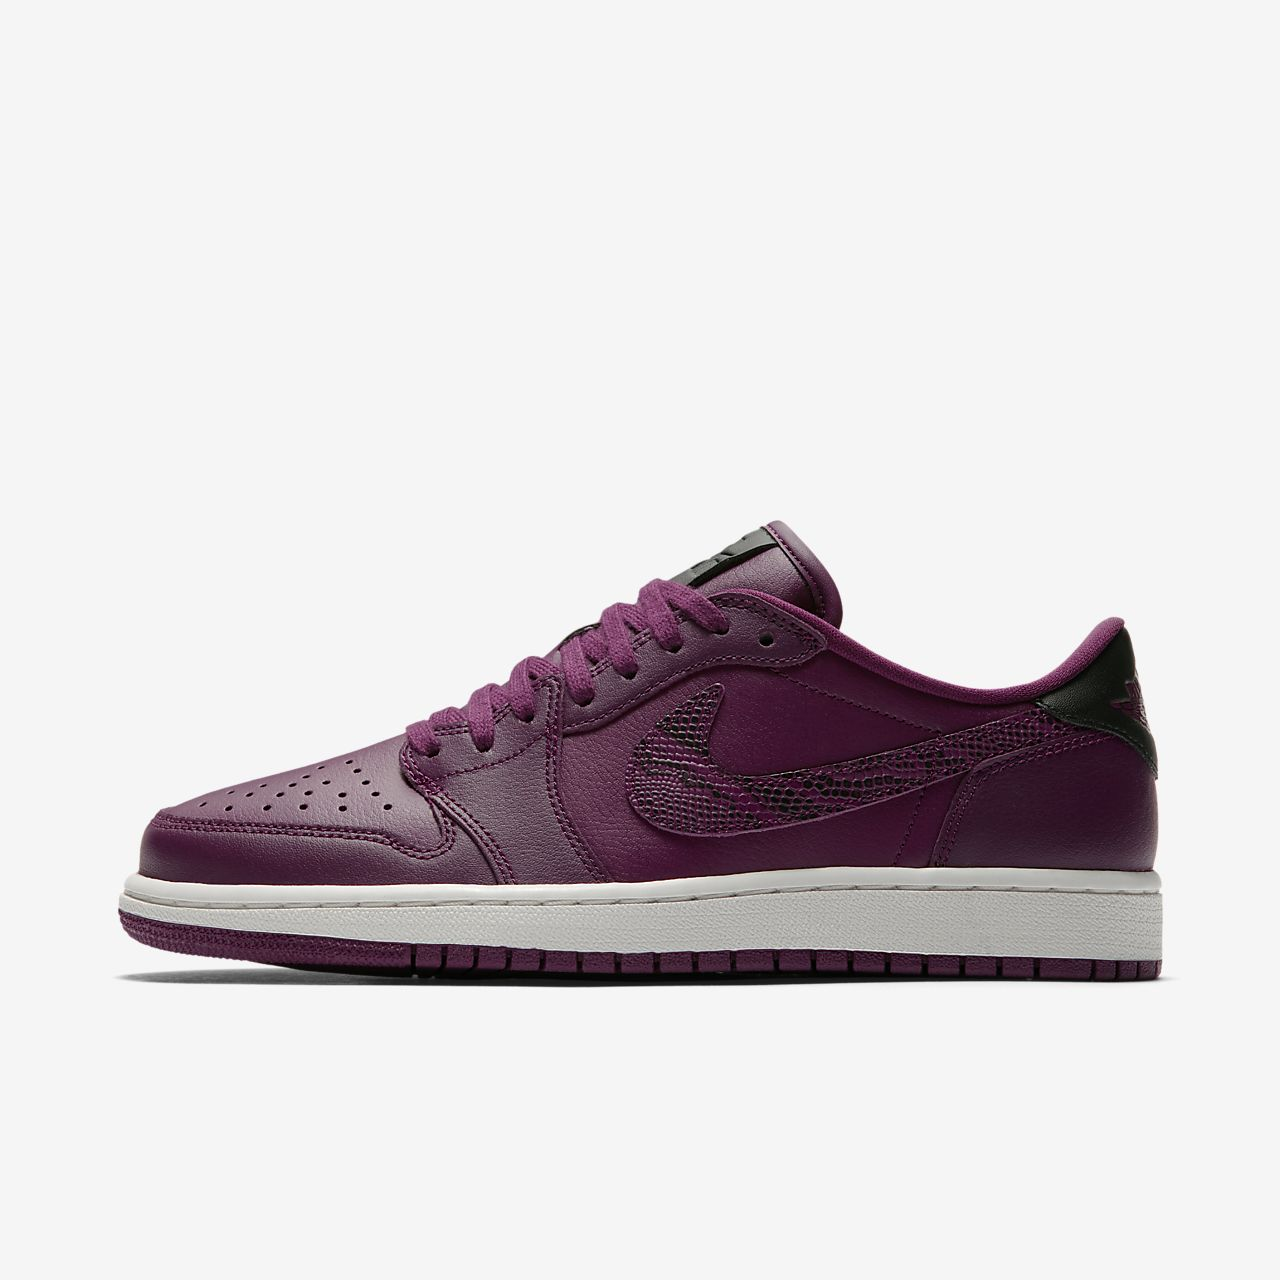 hot sale online 304e2 3a3f6 ... Air Jordan 1 Retro Low OG Women s Shoe